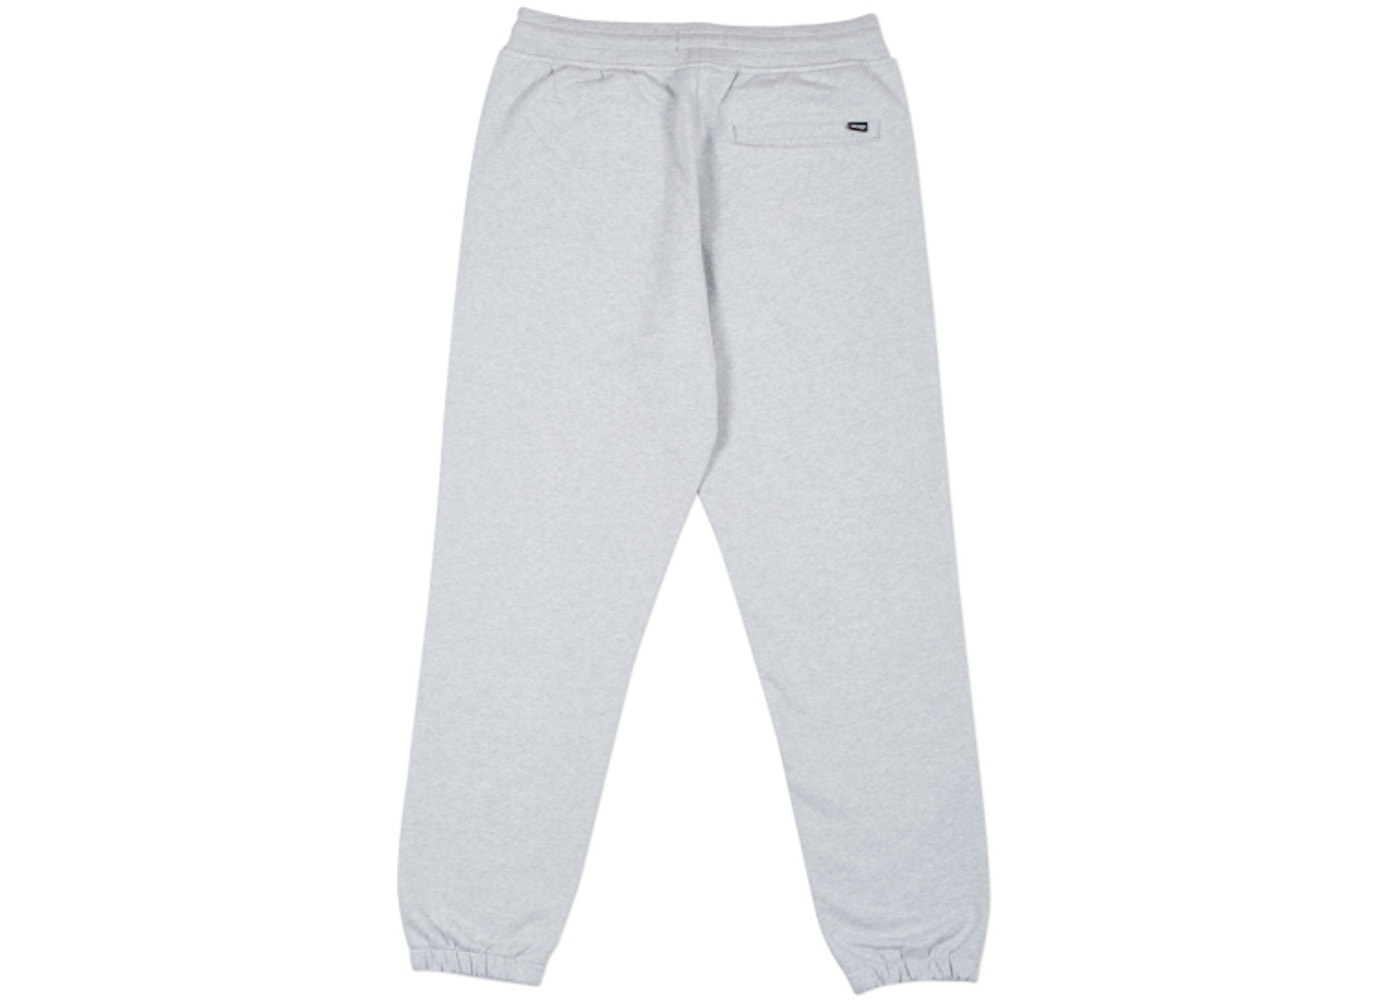 ee481e77 Palace Bottoms - Buy & Sell Streetwear